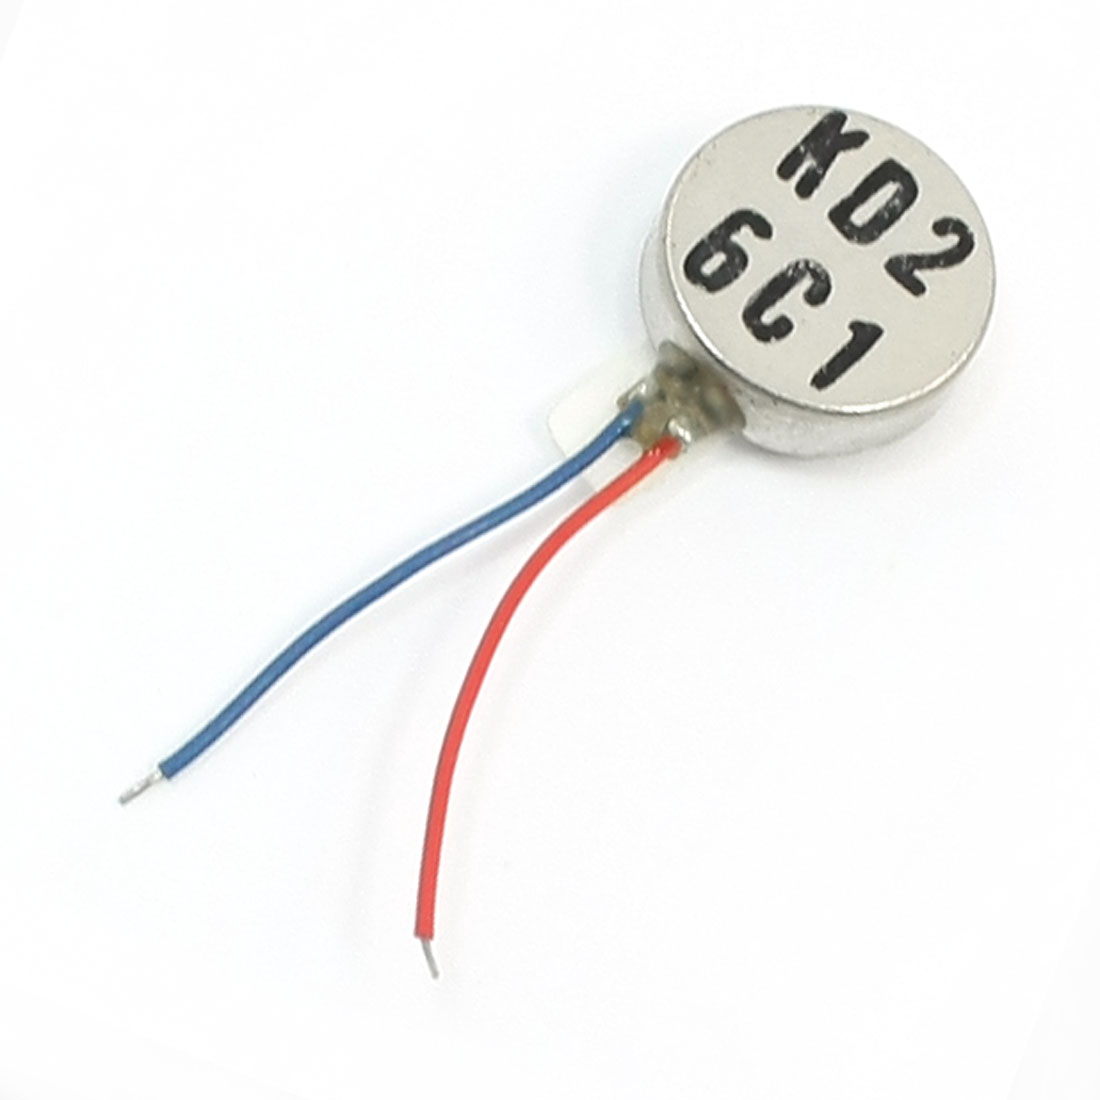 Cell Phone Vibrating Coin Type Mini Vibration Motor 12000RPM 10mm x 3.4mm